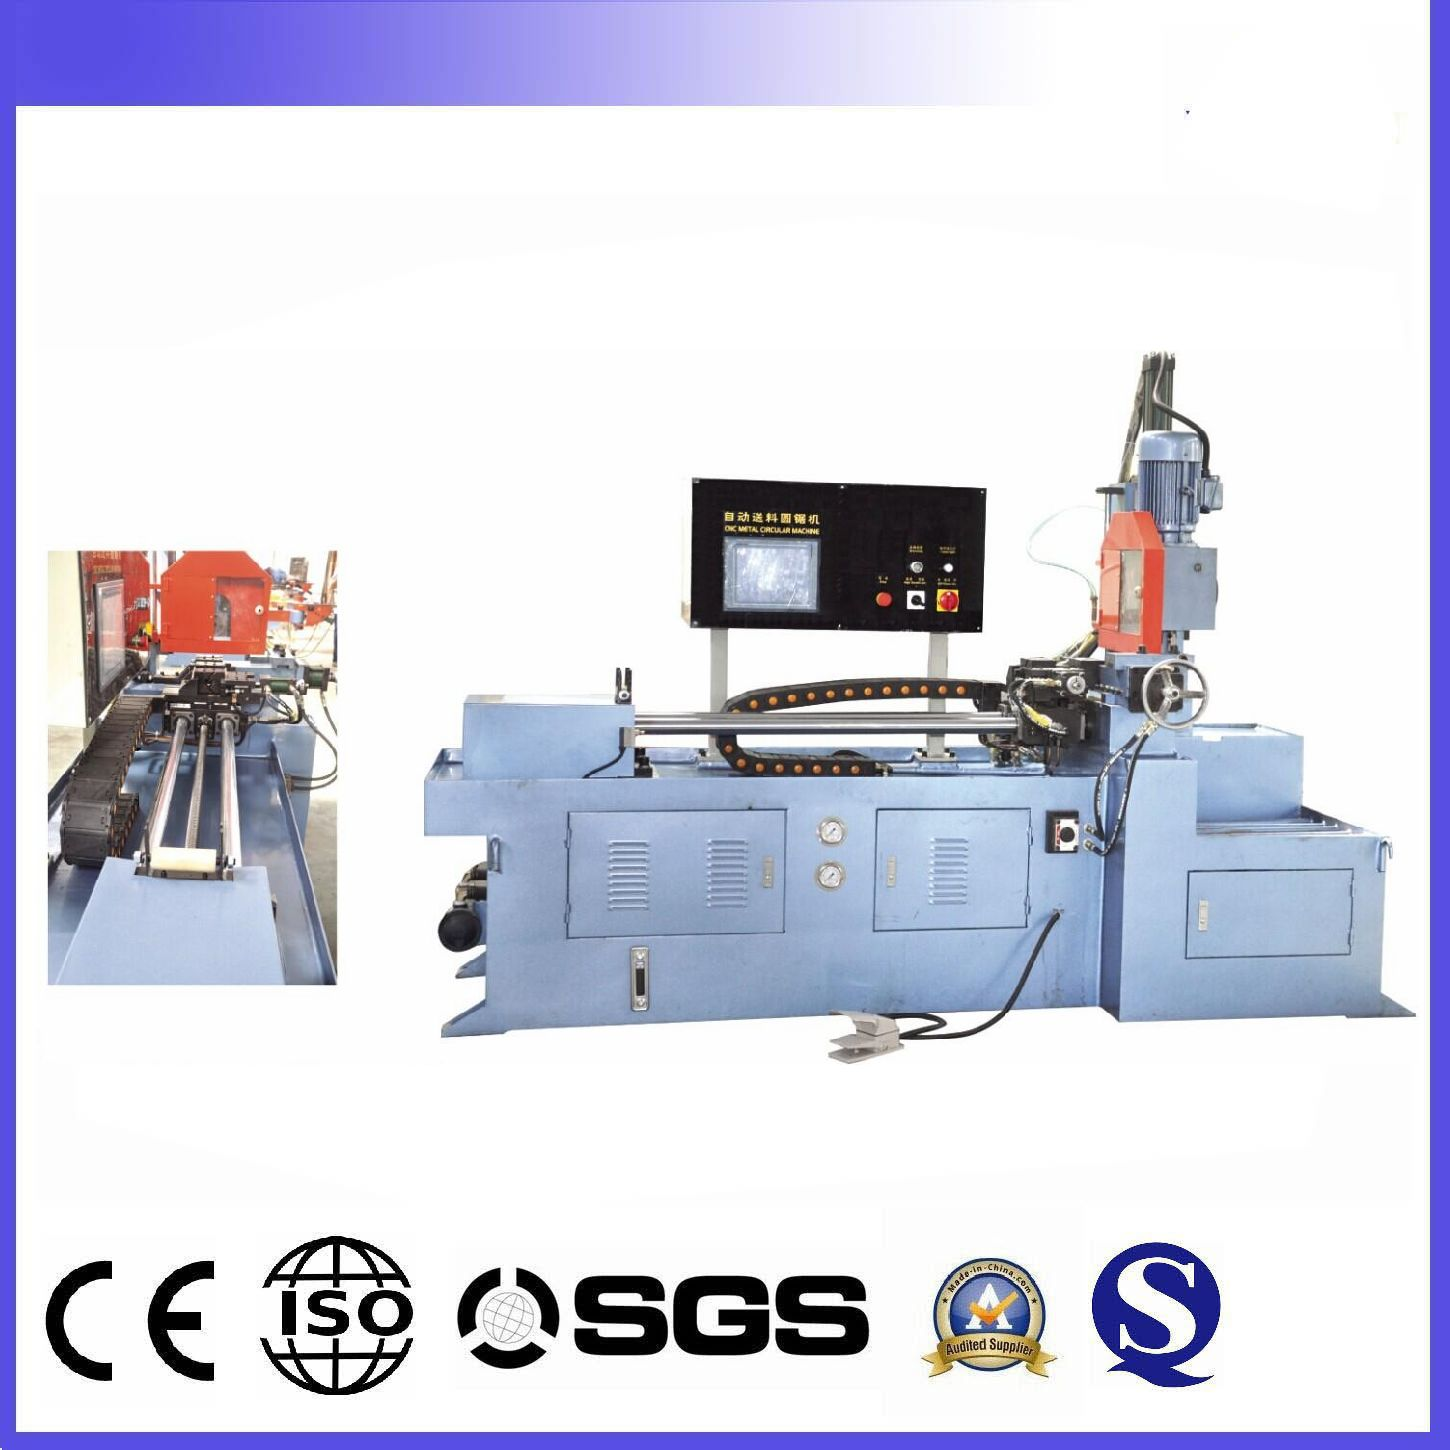 CNC automatic aluminium pipe and profile saw circle cutting machines